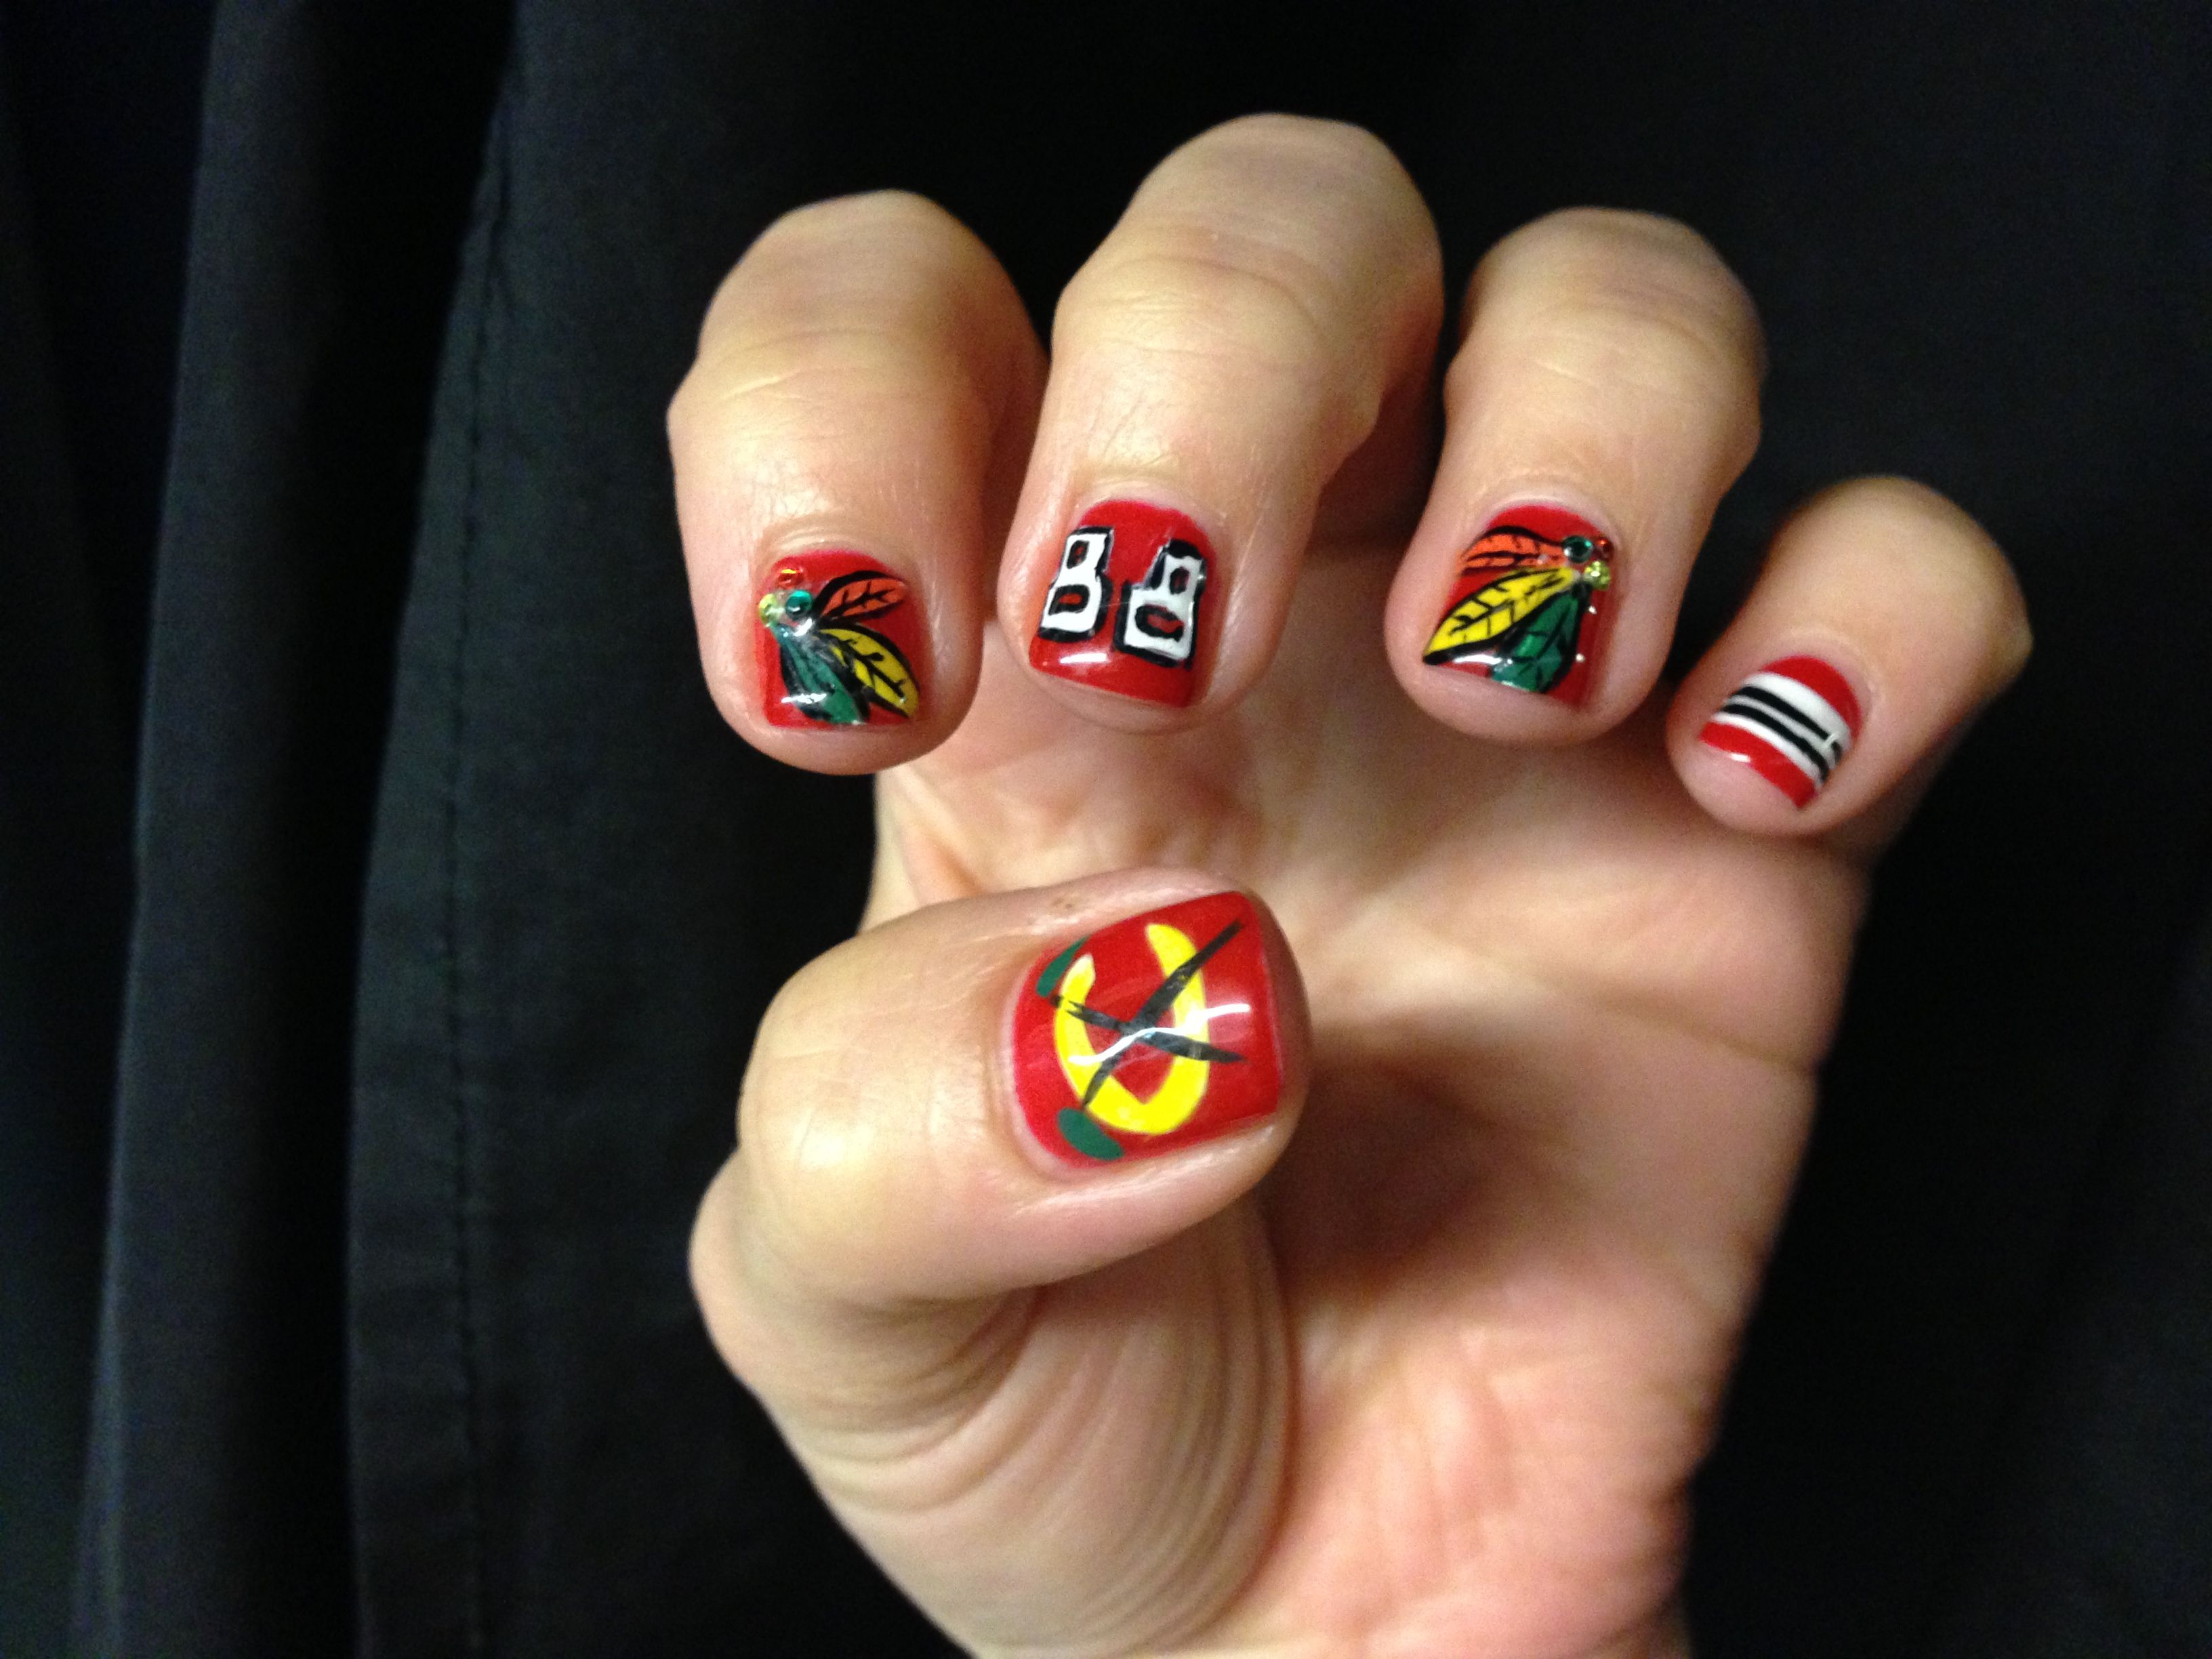 Amazing Blackhawks Nails Done By Blanca At Blueberry Moon Salon And